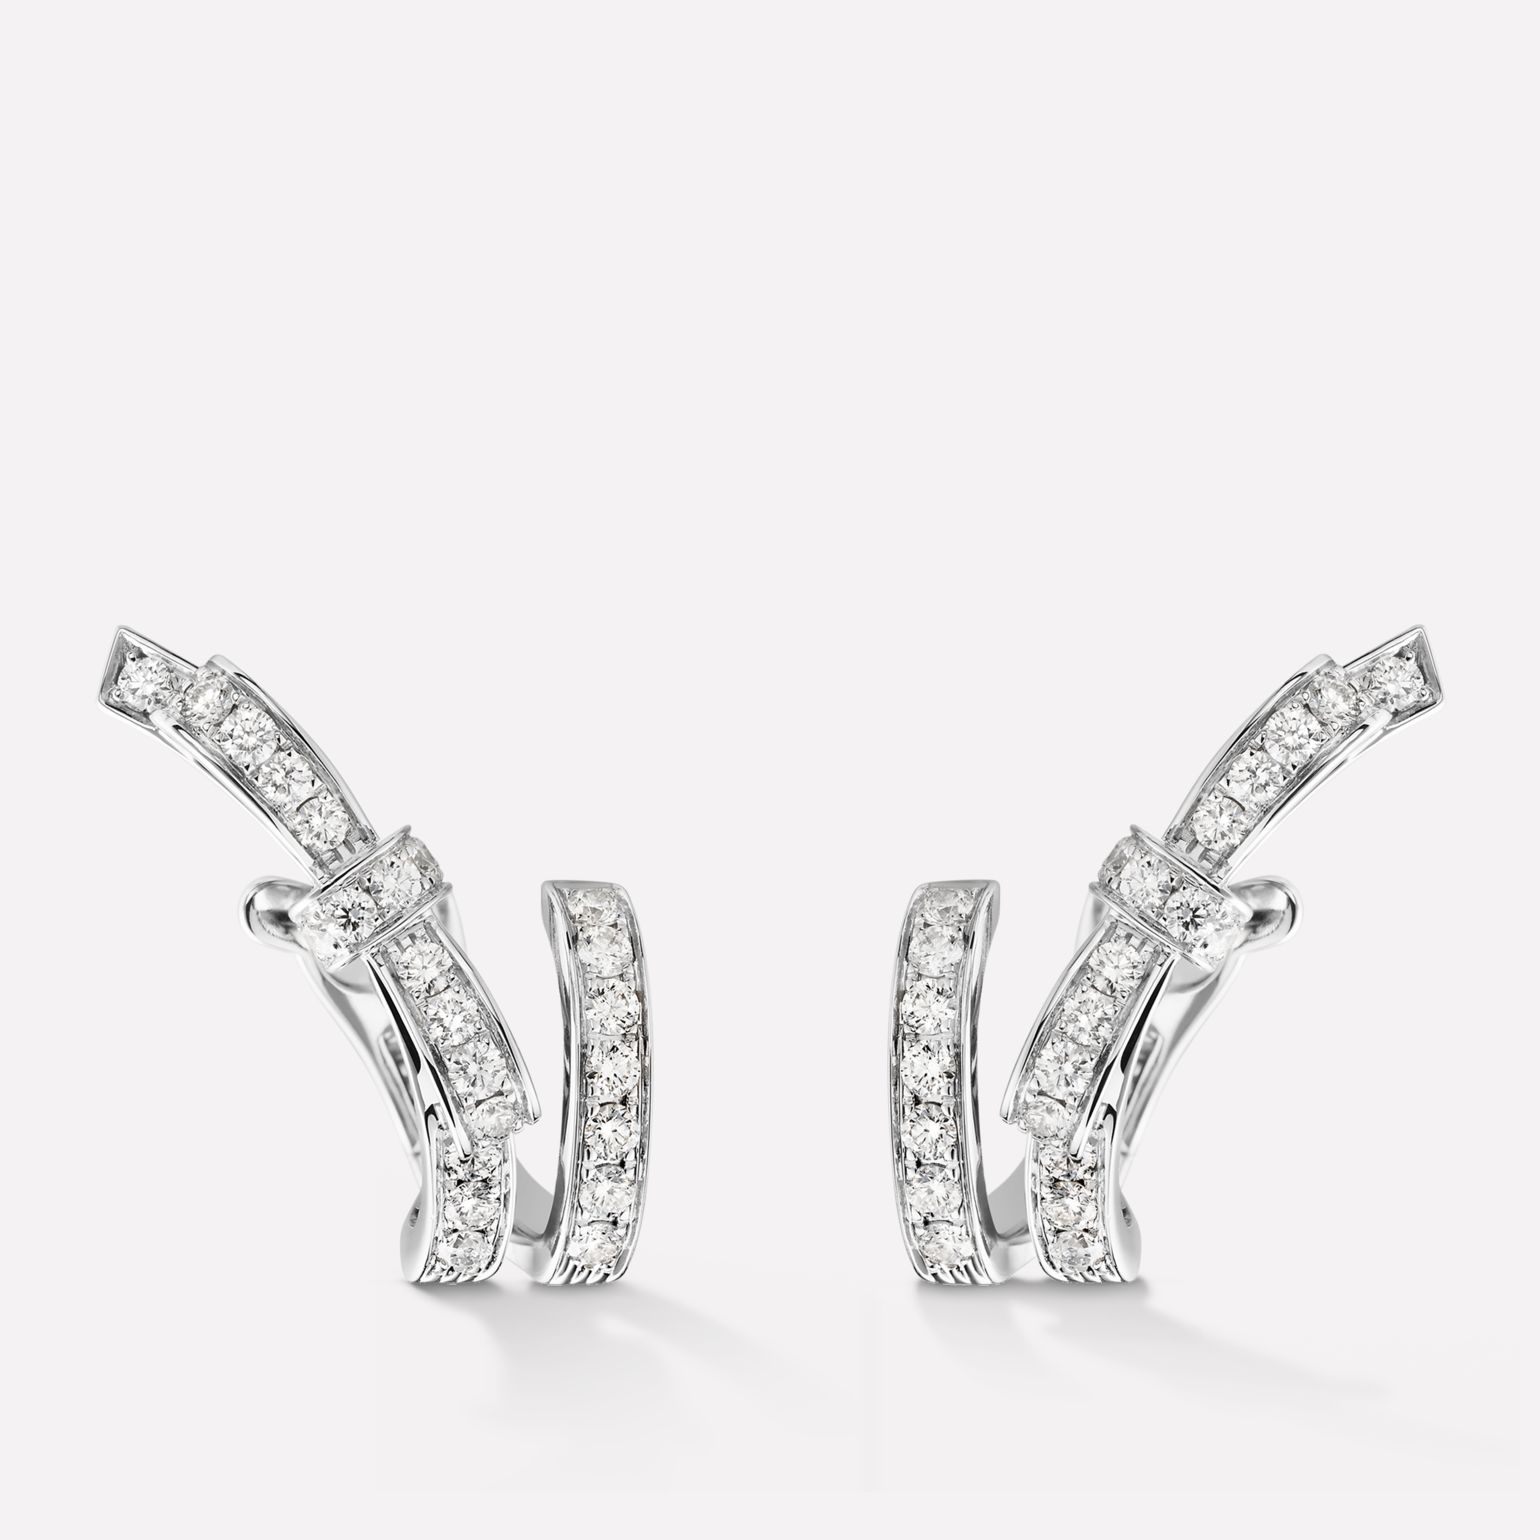 Boucles d'oreilles Ruban Motif ruban en or blanc 18 carats et diamants